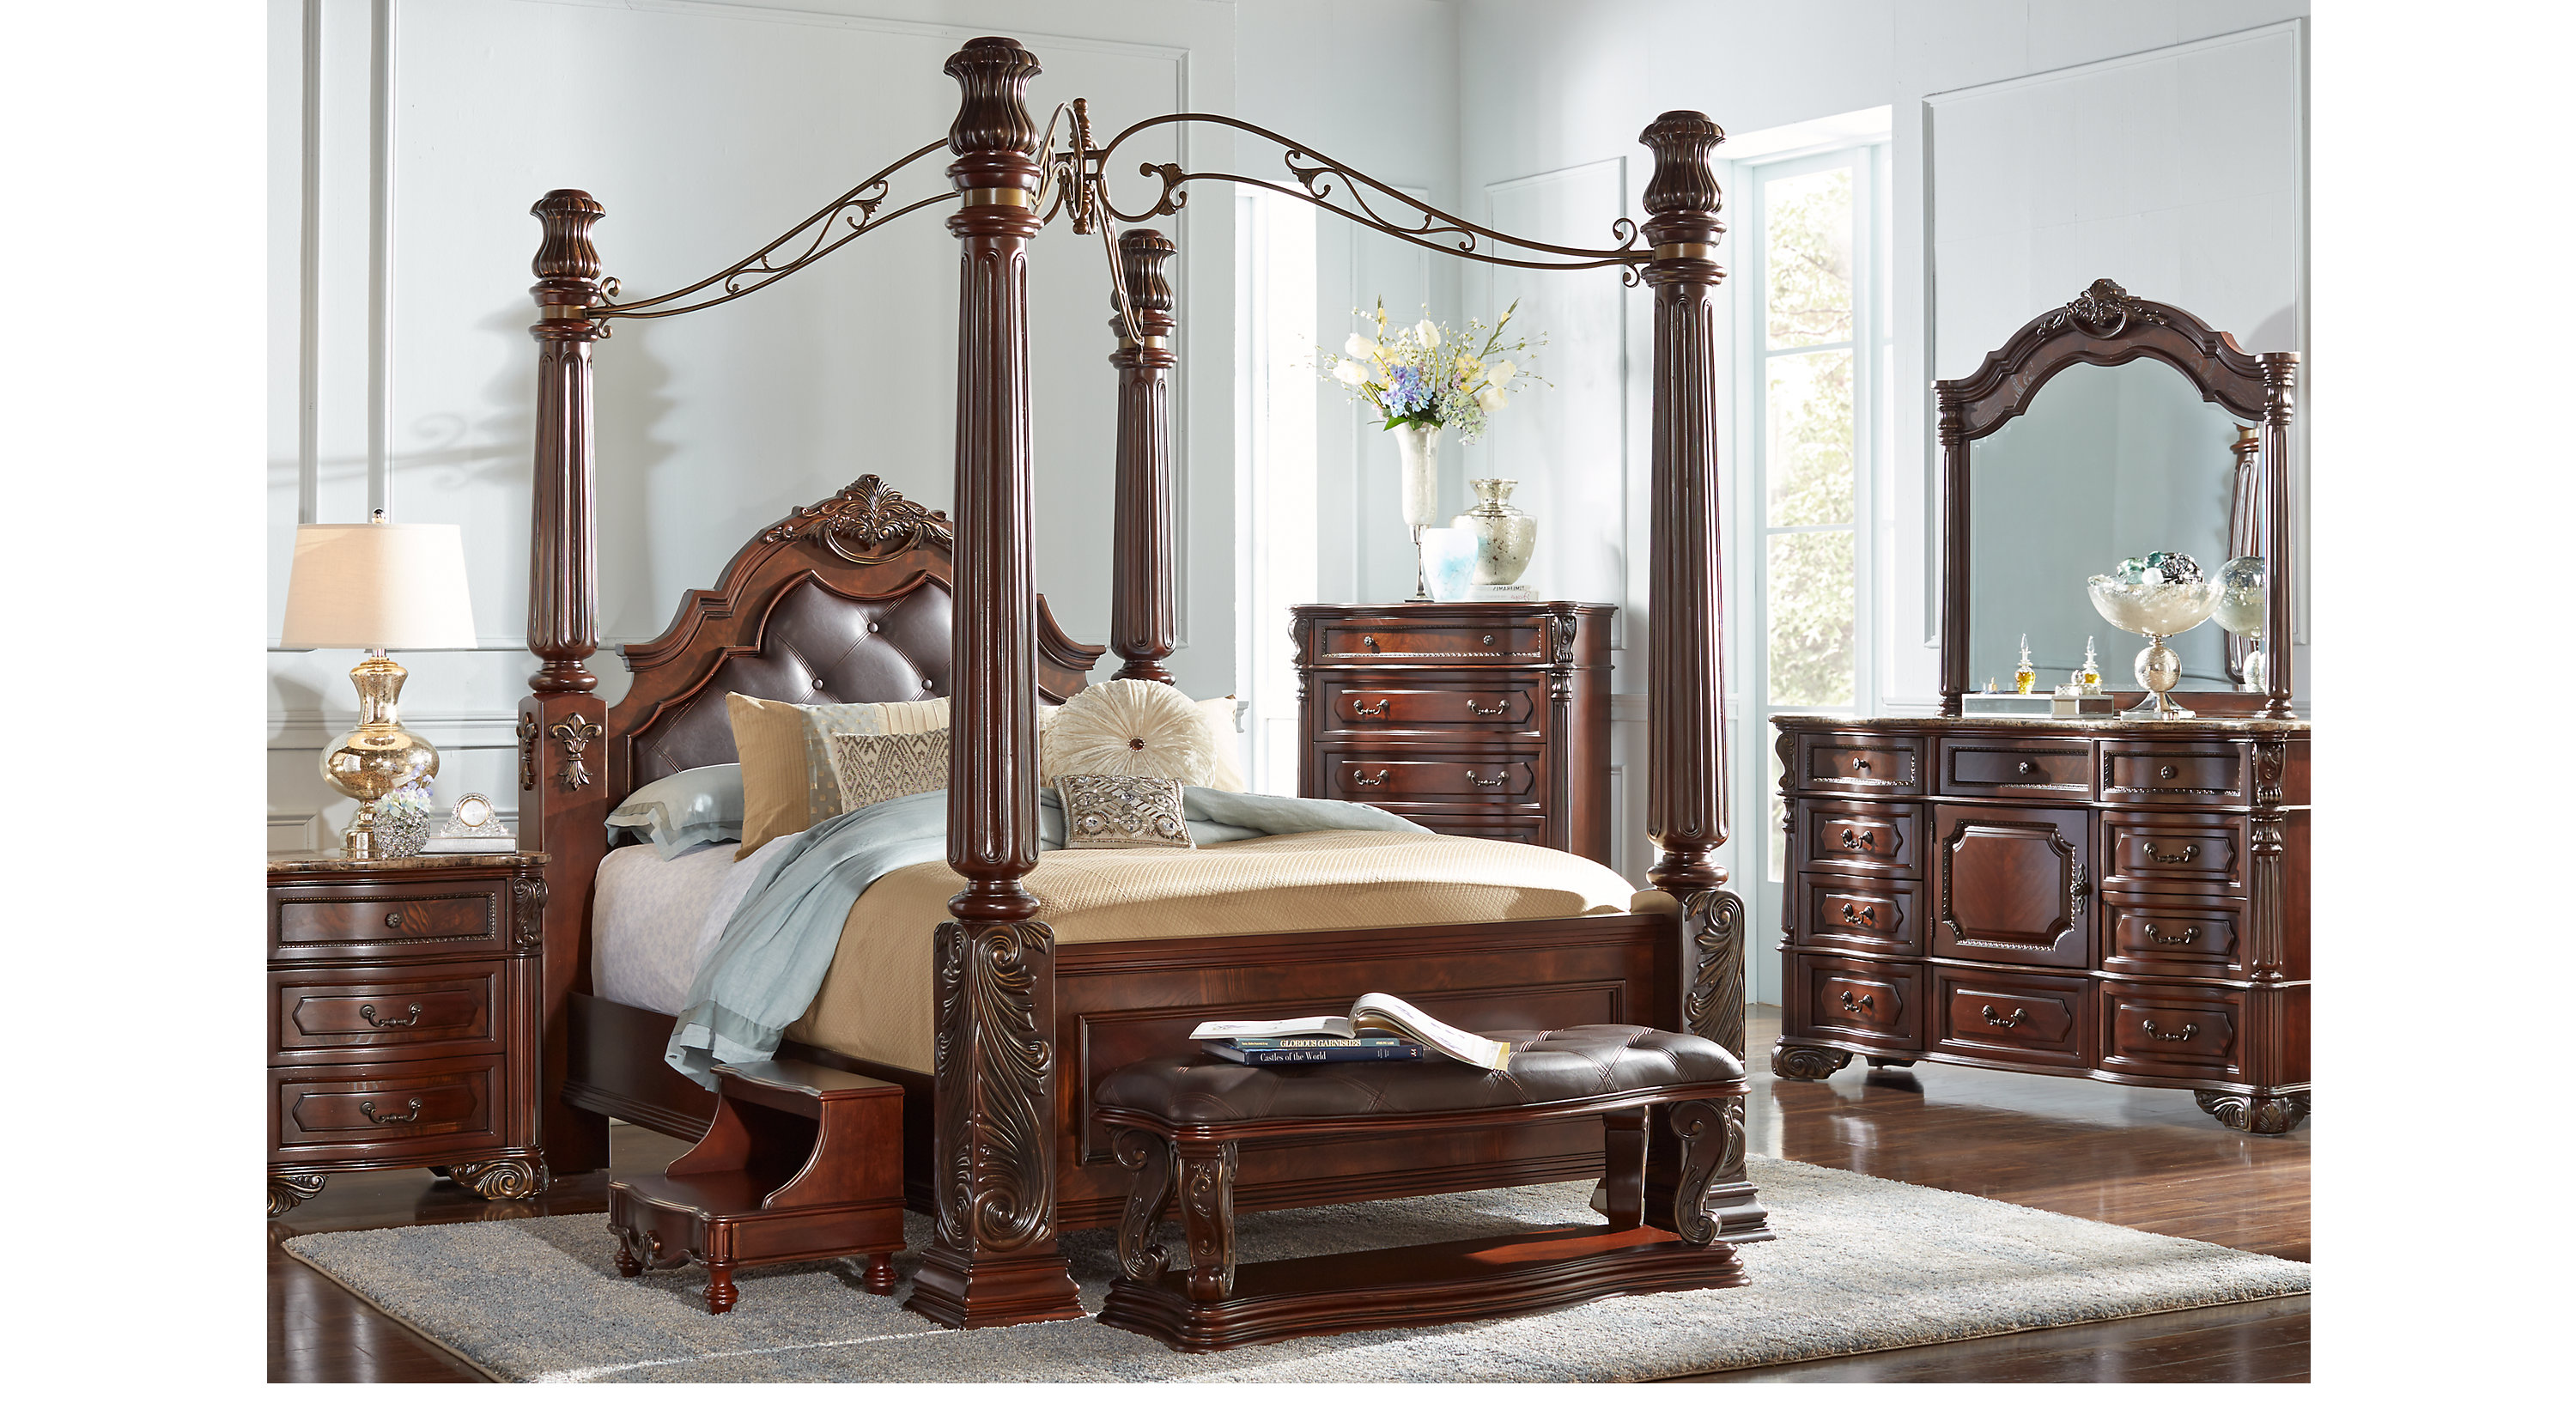 South&ton Walnut (dark brown) 6 Pc King Canopy Bedroom - Traditional  sc 1 st  Furniture.com : brown canopy bed - memphite.com